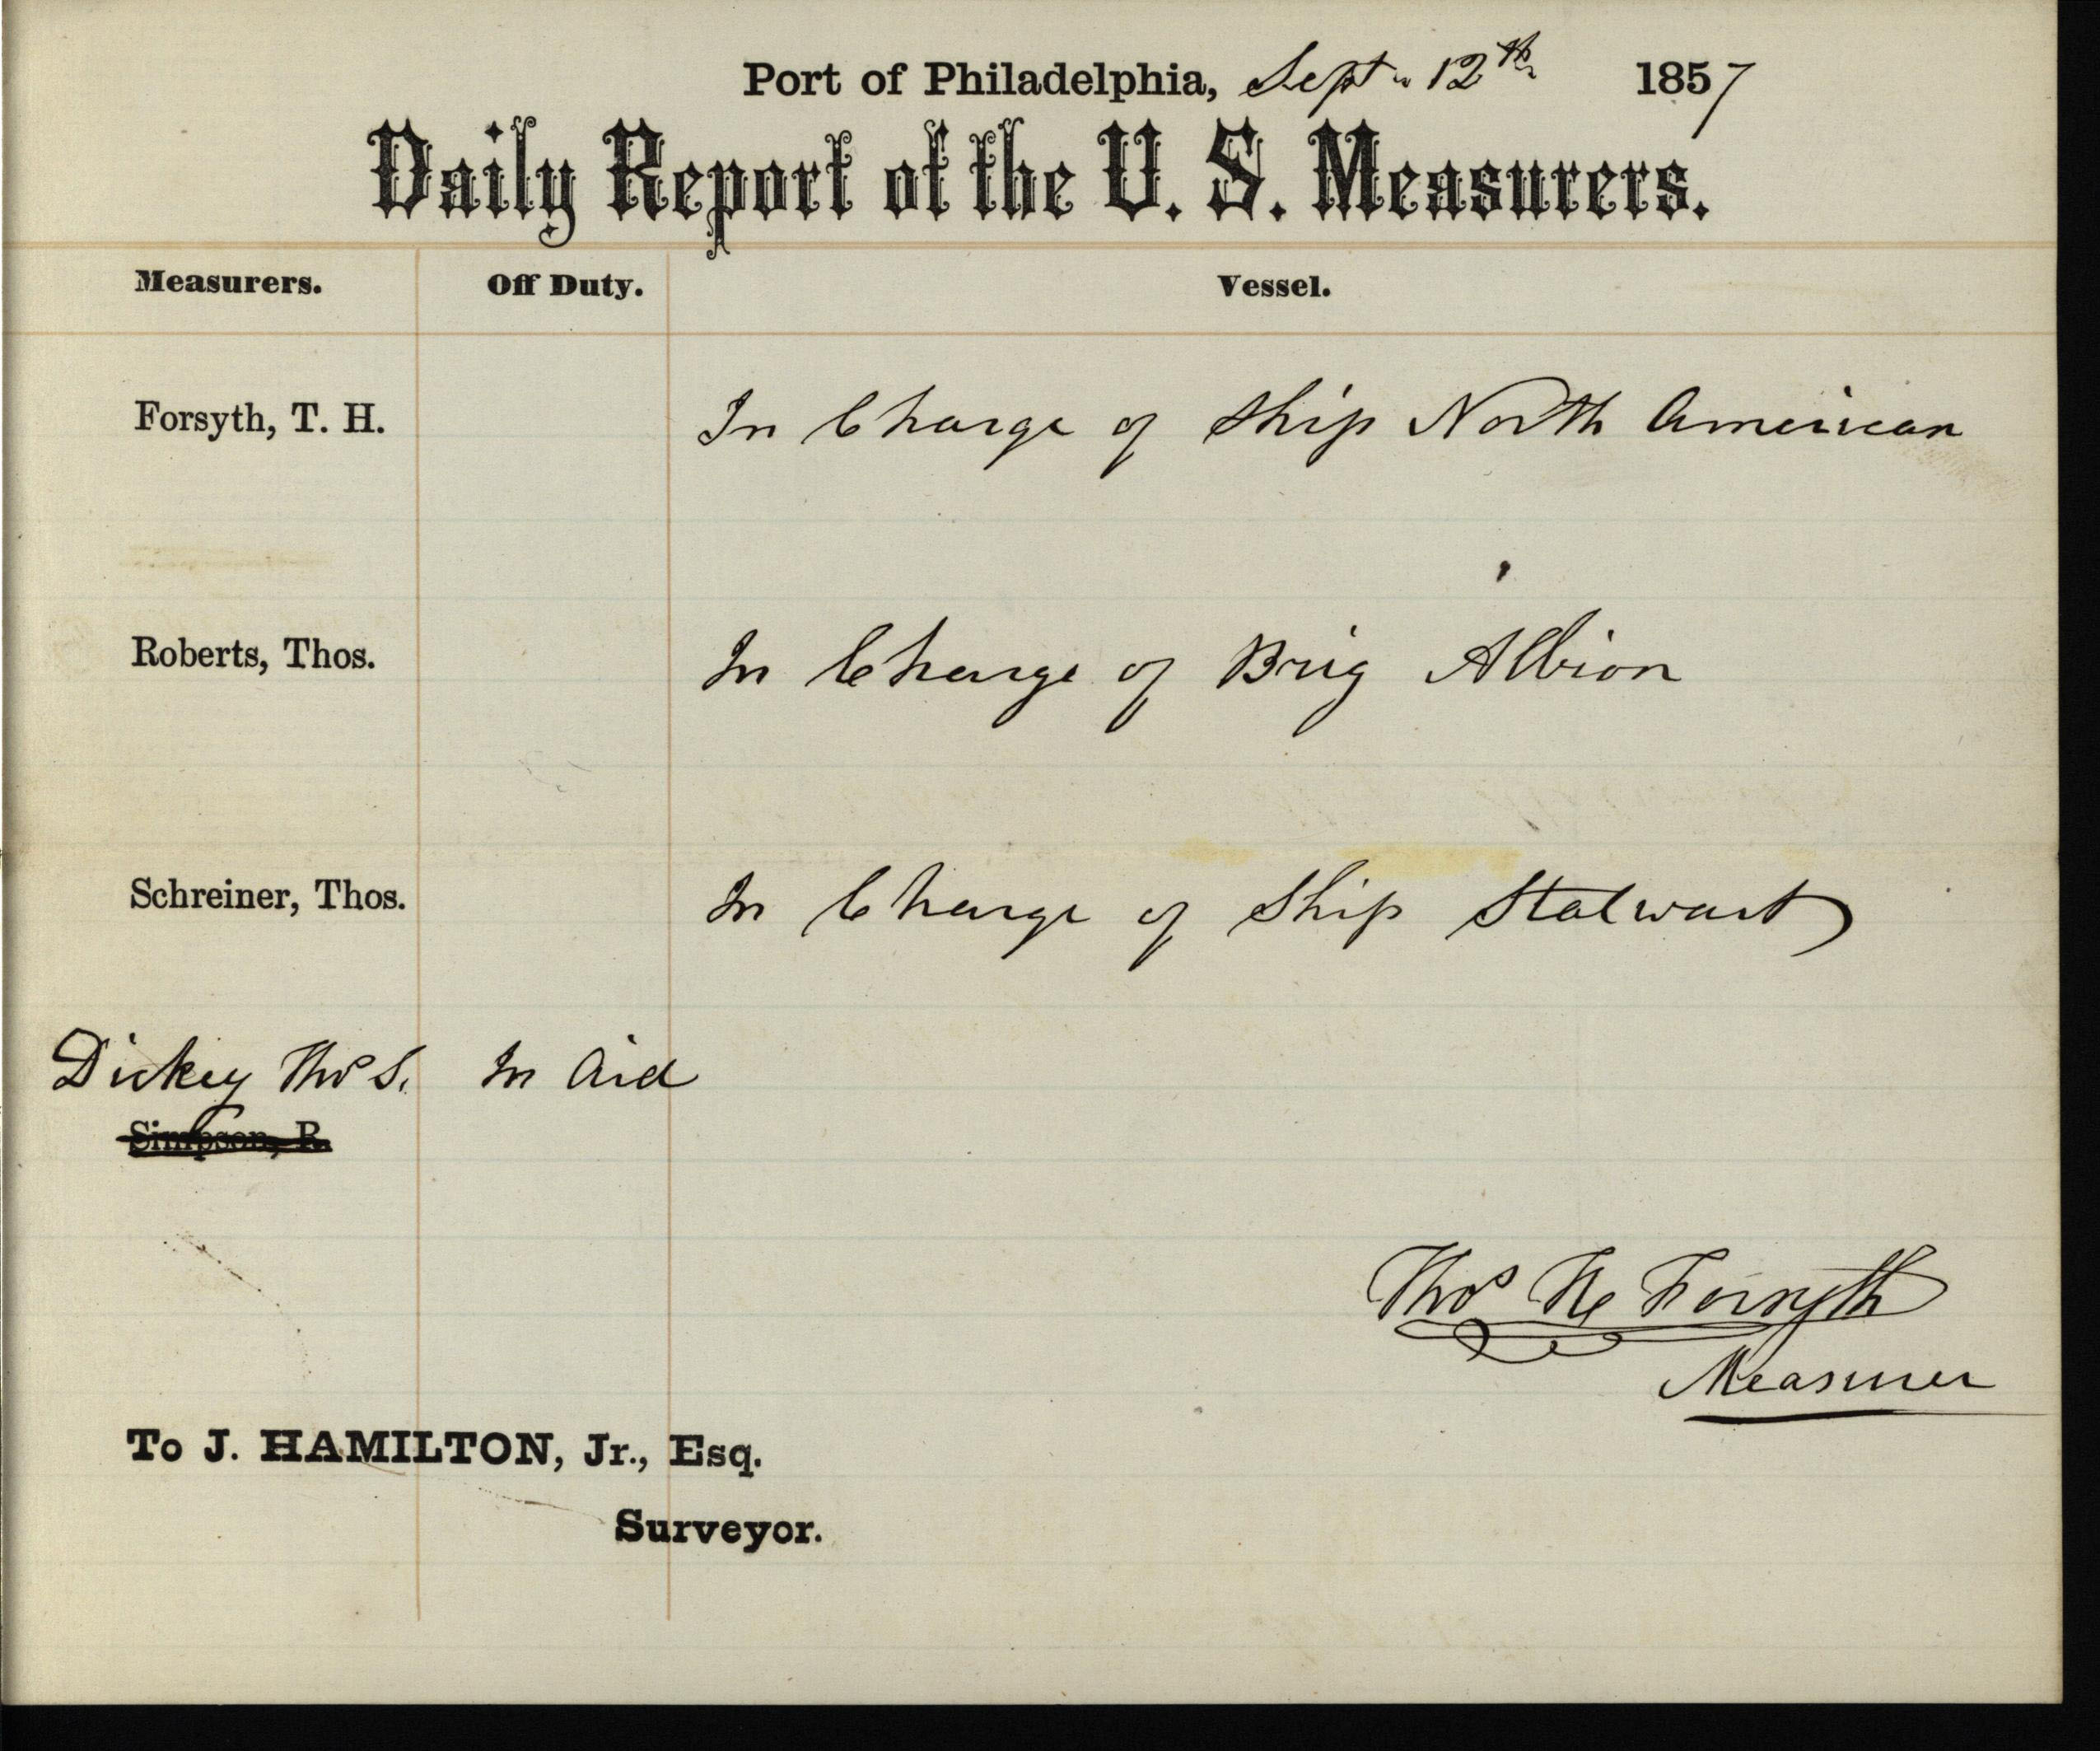 Daily Report of the U.S. Measurers, 1857